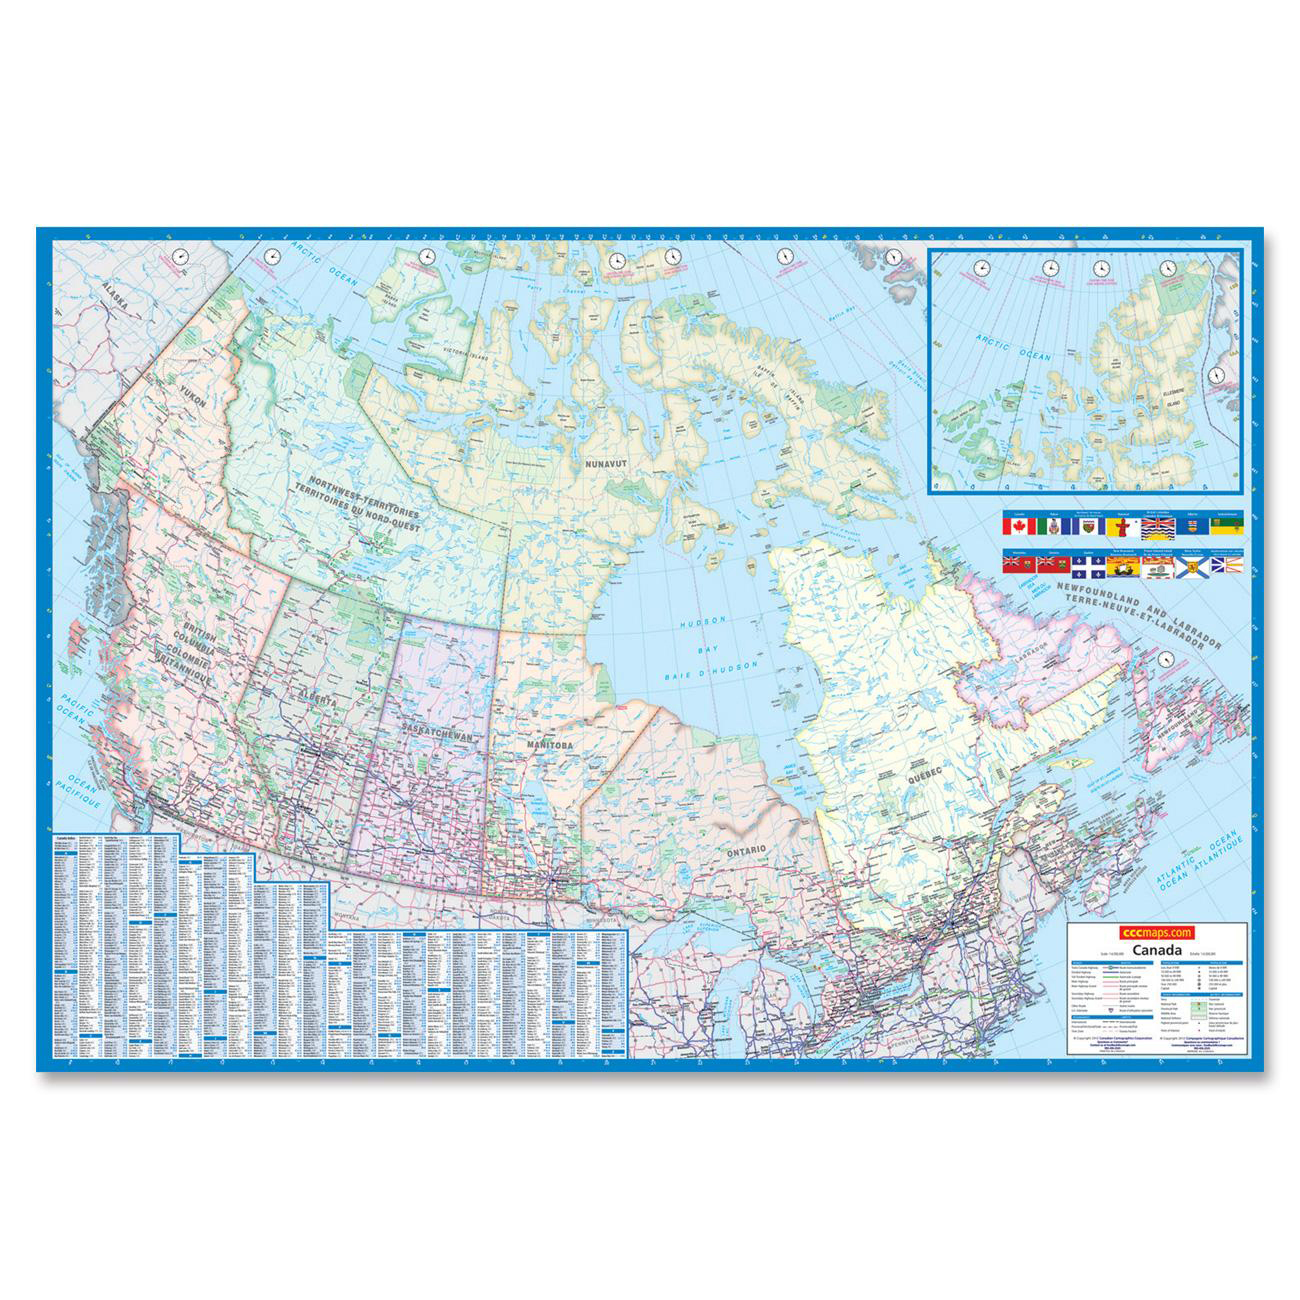 Map Of Canada Kamloops.Kamloops Office Systems Furniture Office Decor Lighting